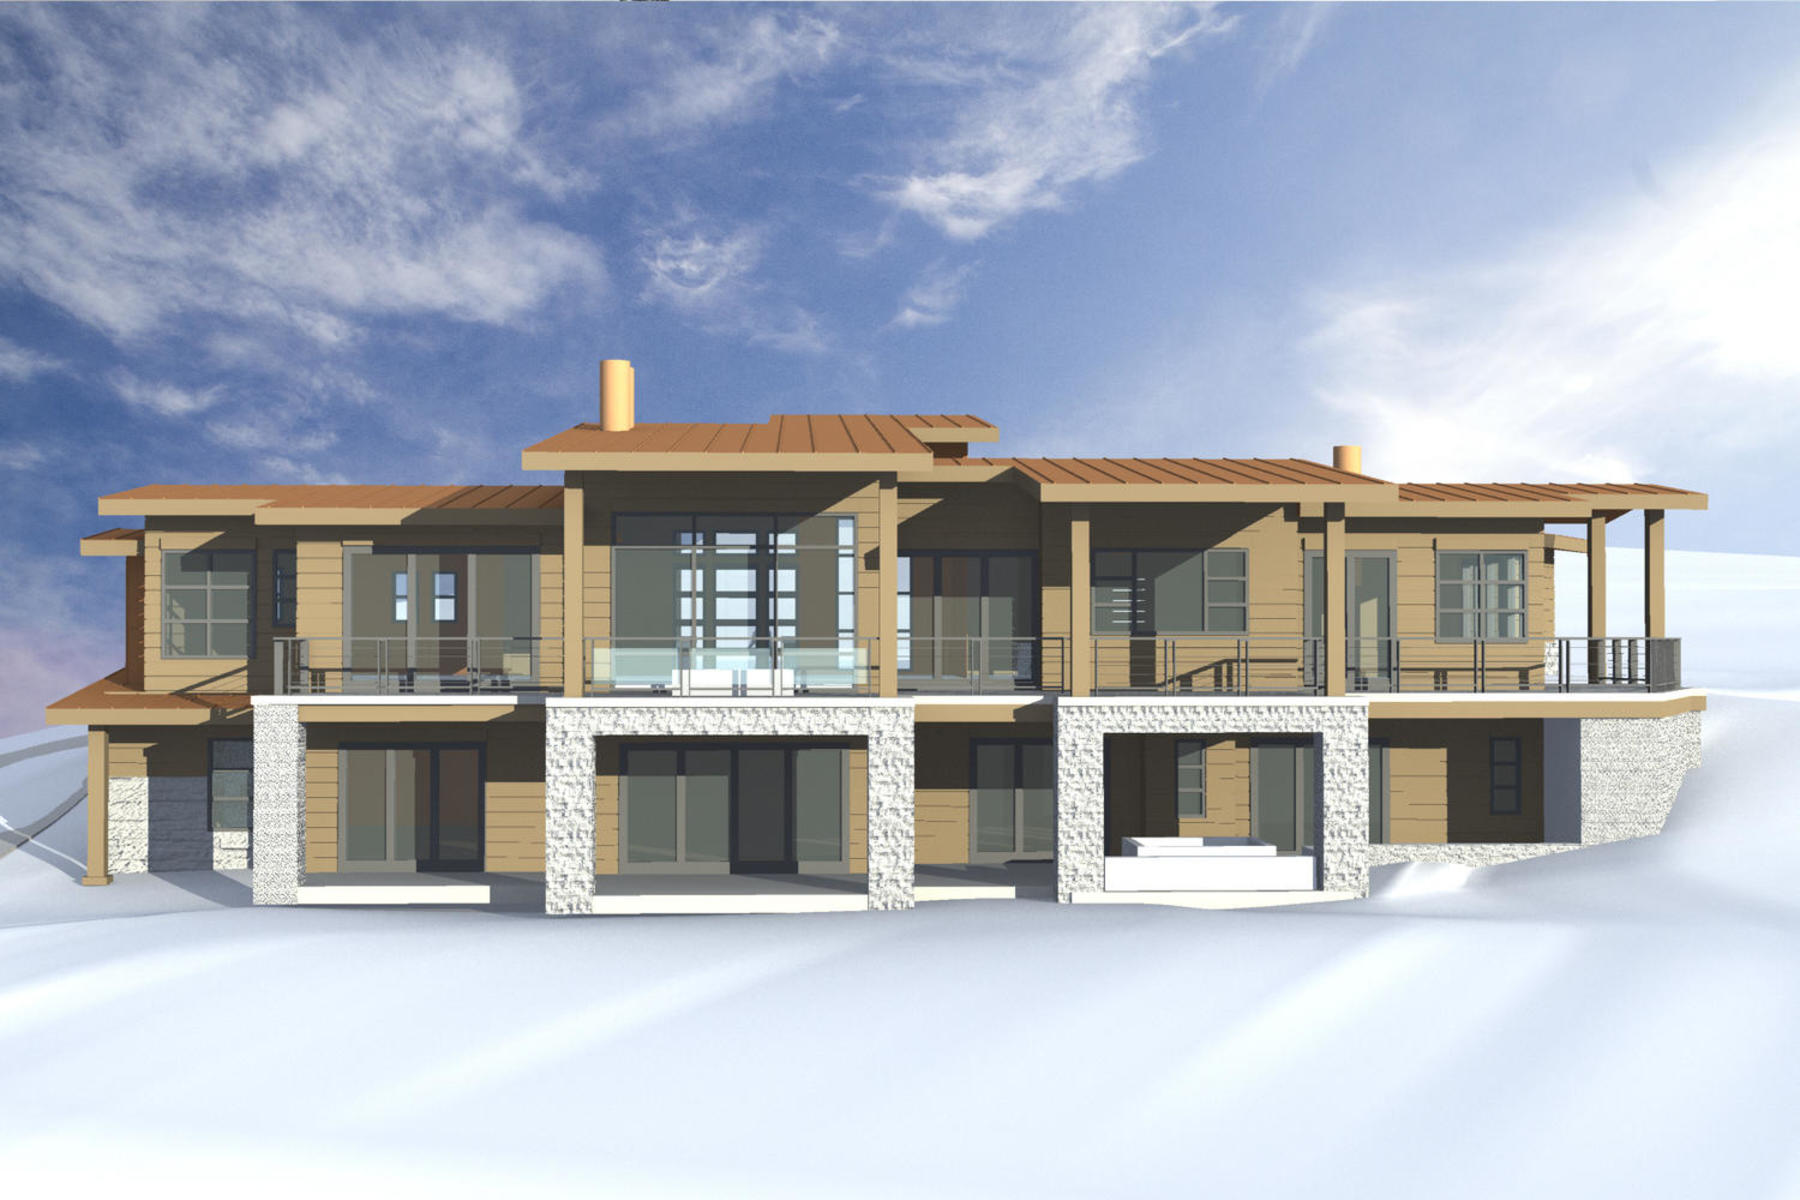 Single Family Home for Sale at New Construction in the Desired Palisades Neighborhood in Promontory 6140 Dakota Trl Park City, Utah, 84098 United States